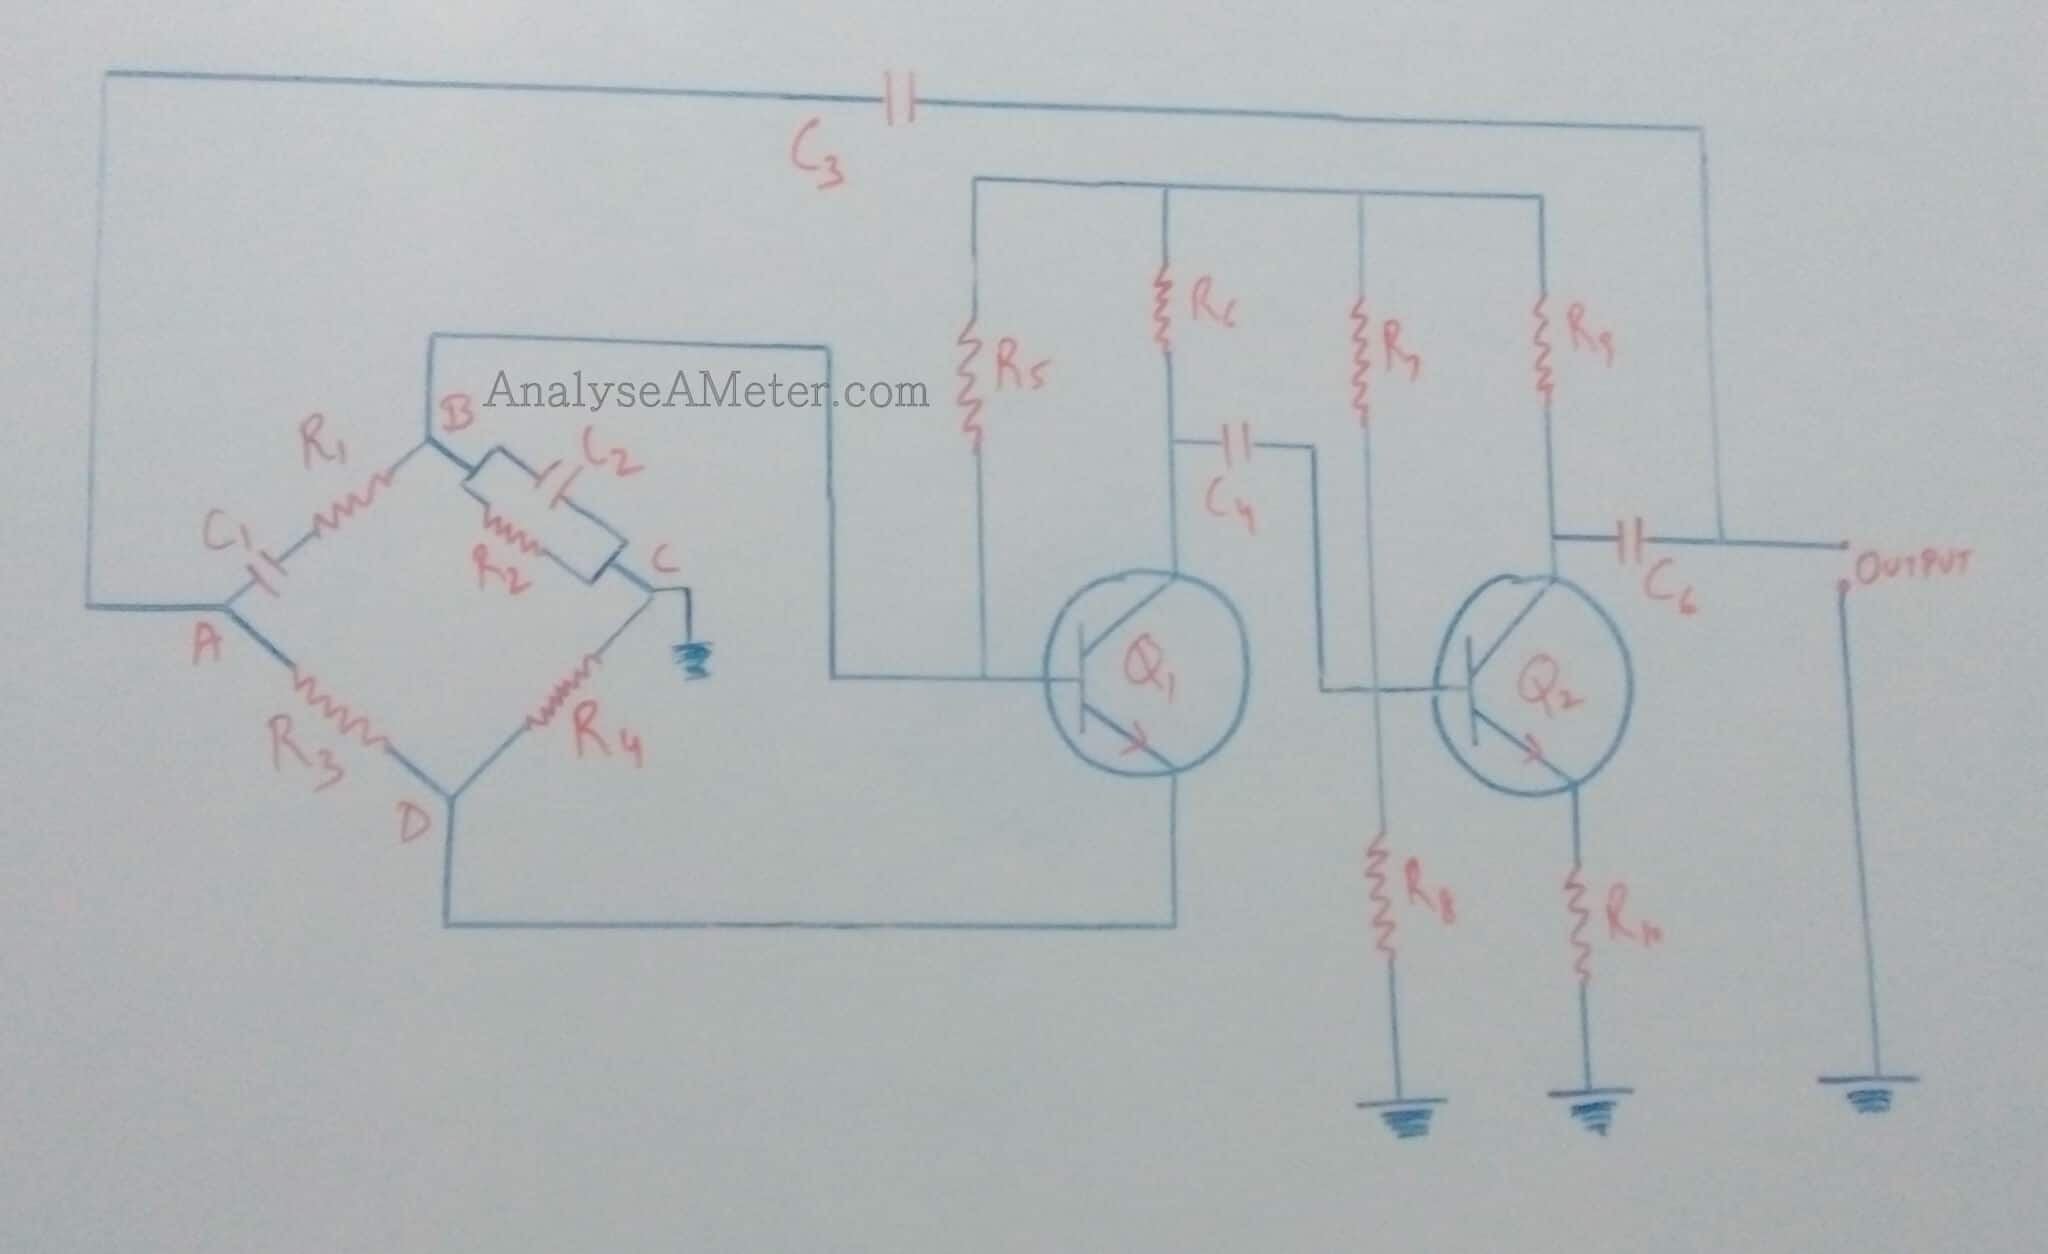 Wien Bridge Oscillator Working And Circuit Using Op Amp Guide Introduction To 741 Operational Amplifier Tutorial Electronic Image